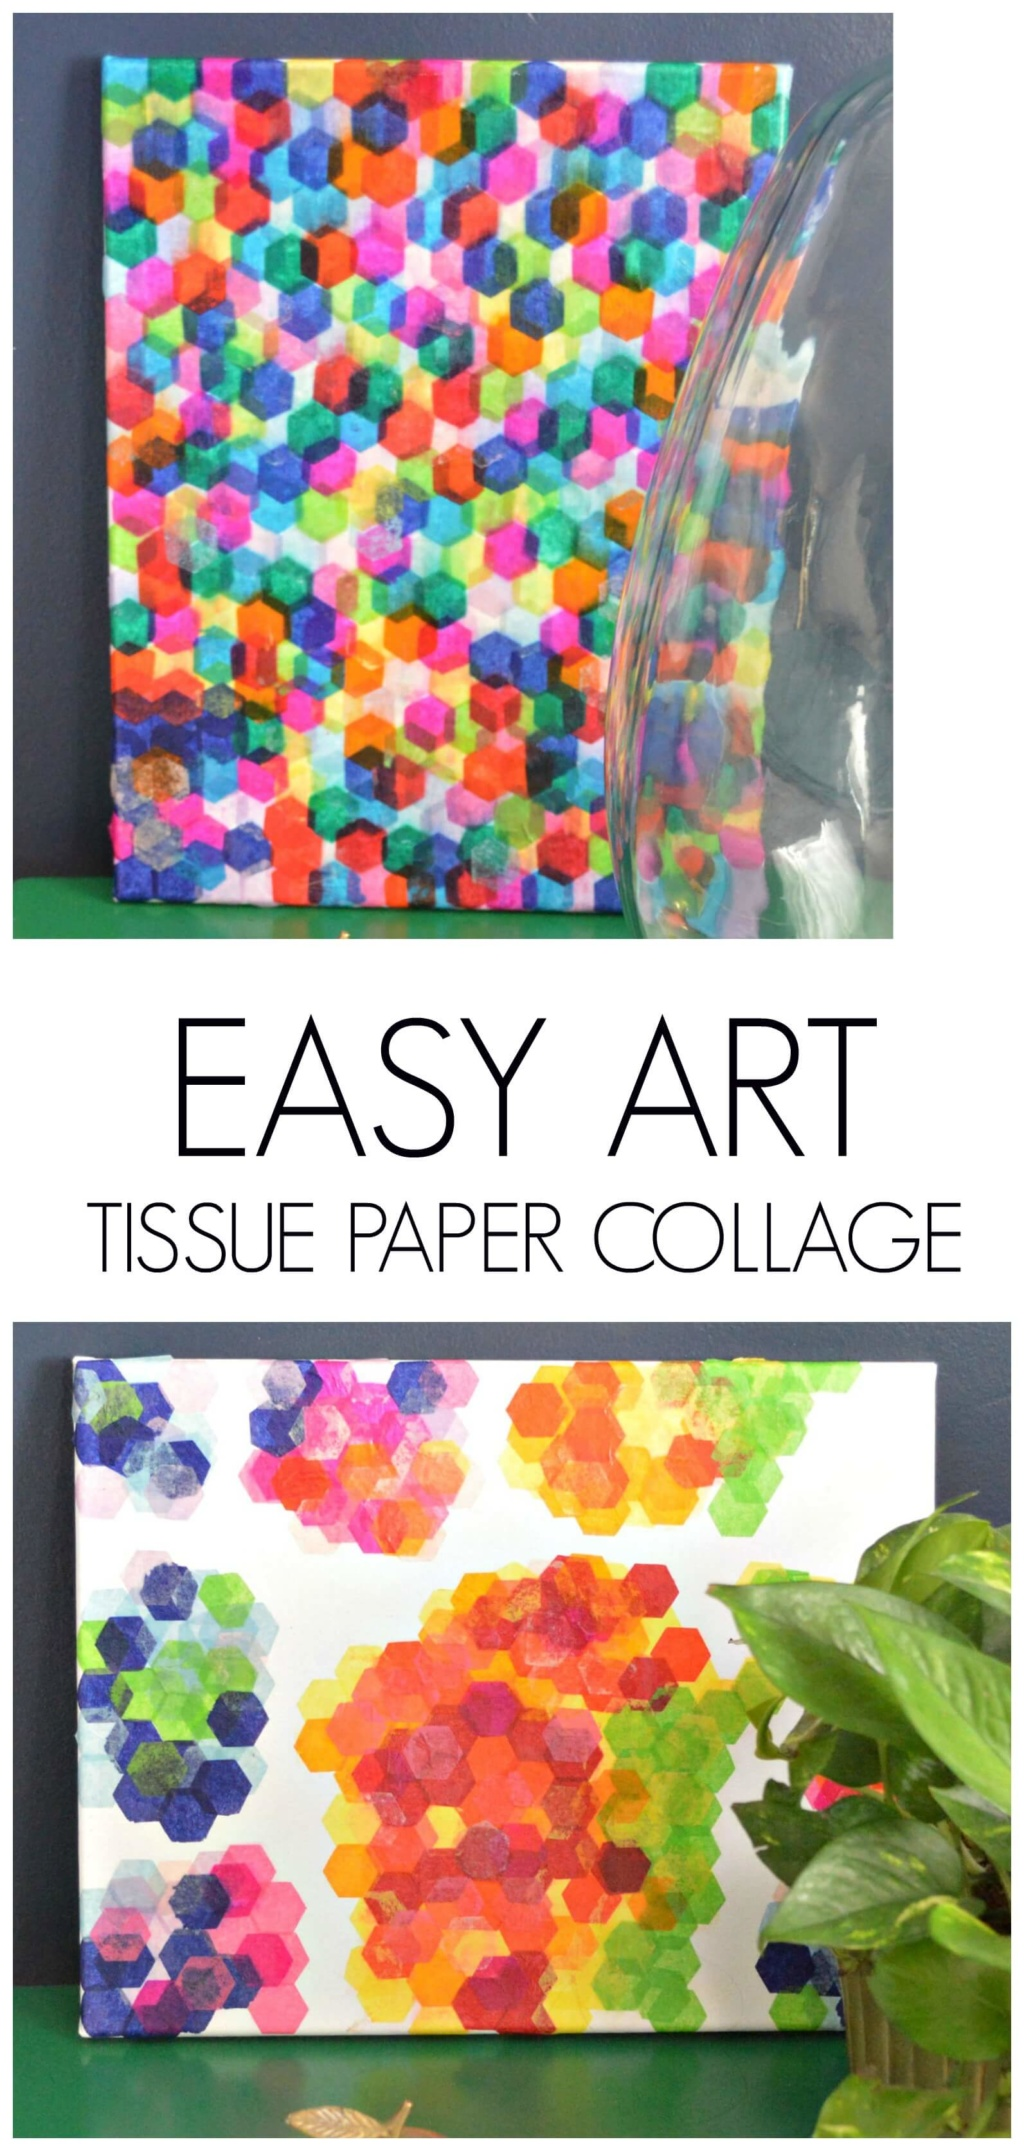 Easy Art – Tissue Paper Collage